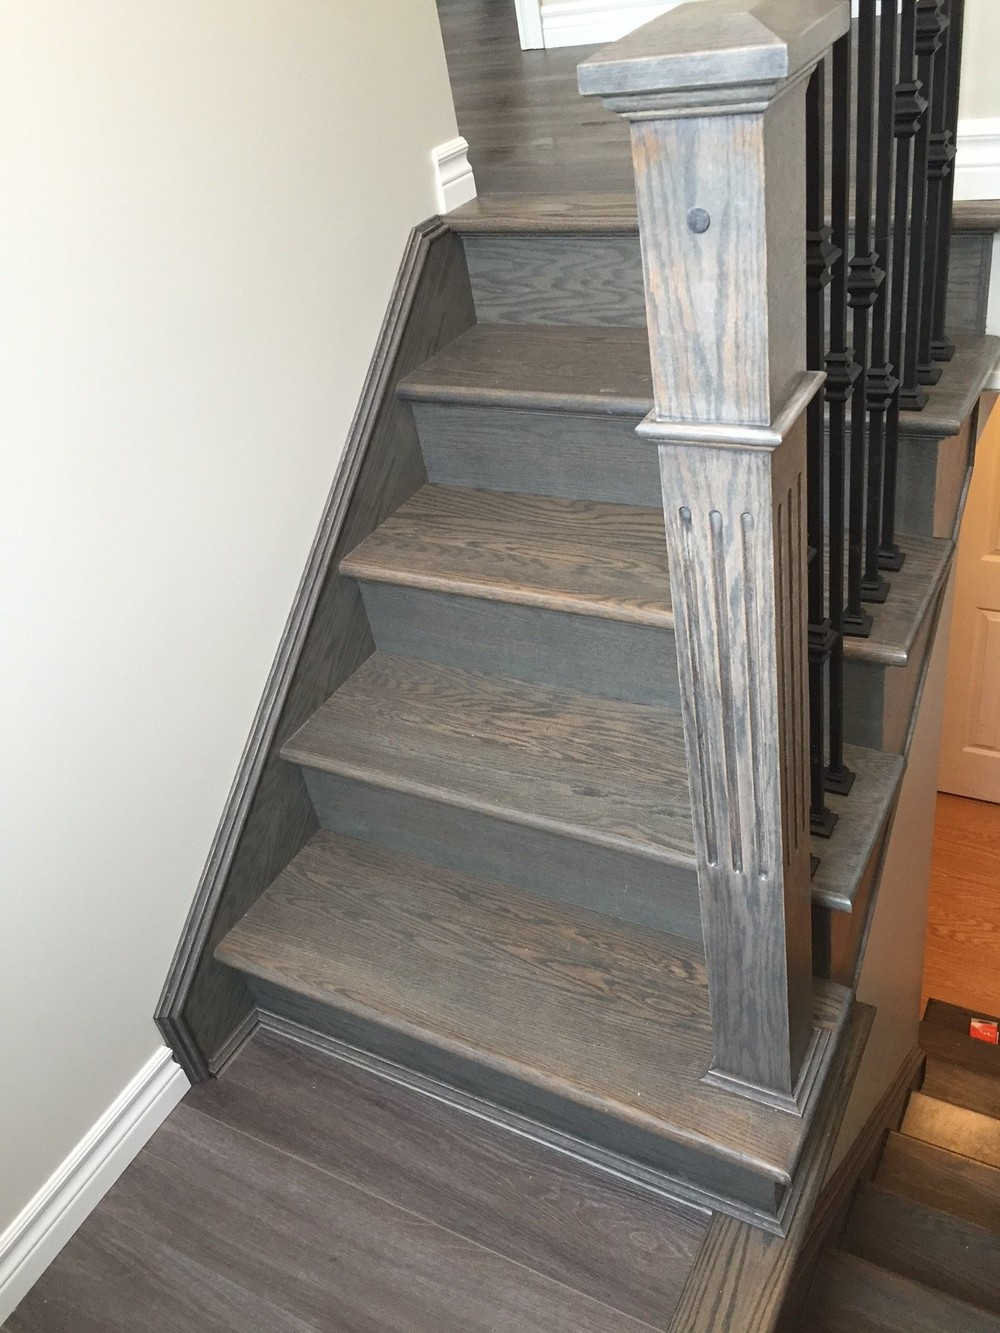 New custom hardwood stairs leading to landing.